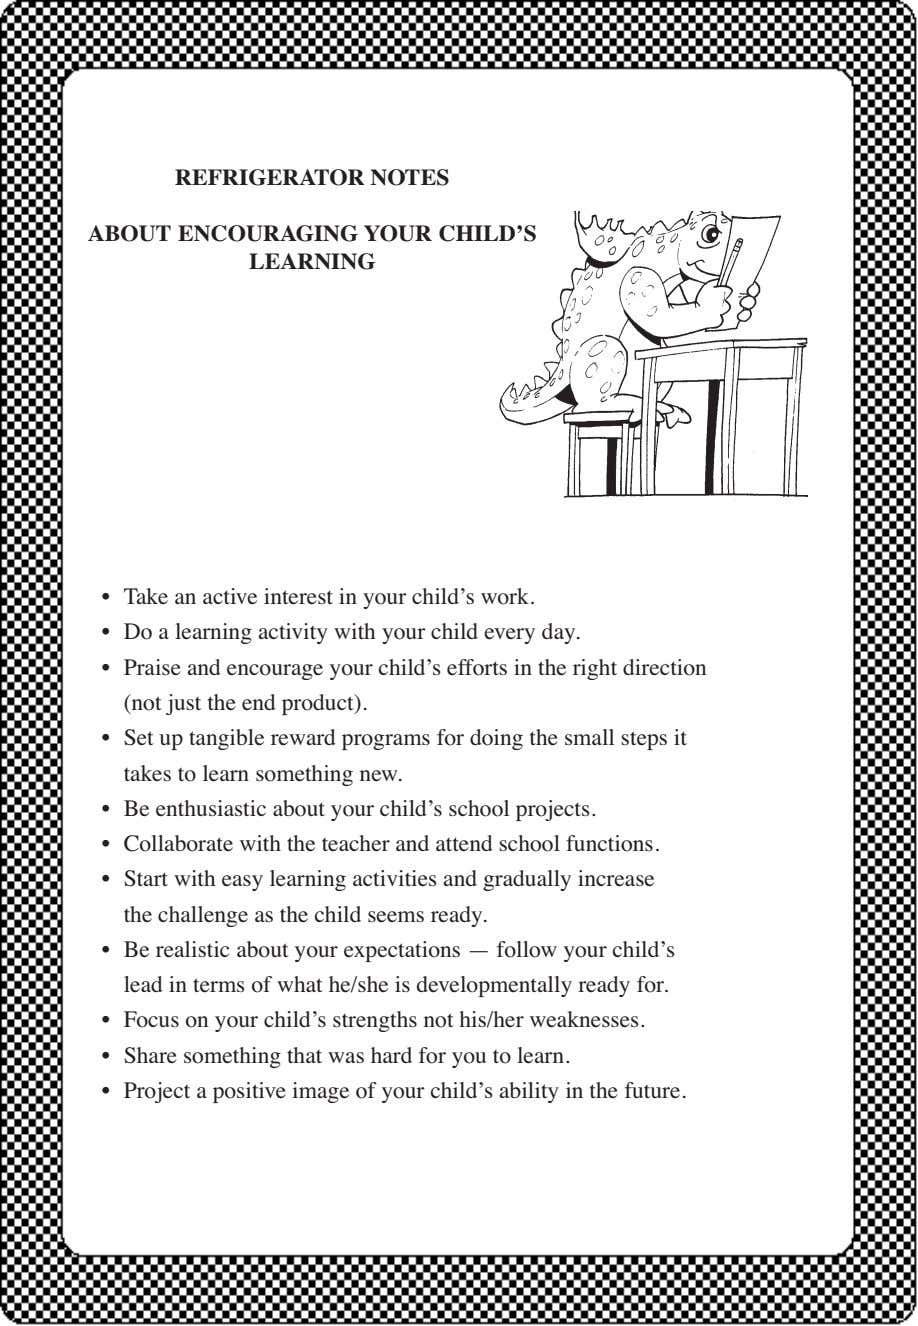 REFRIGERATOR NOTES ABOUT ENCOURAGING YOUR CHILD'S LEARNING • Take an active interest in your child's